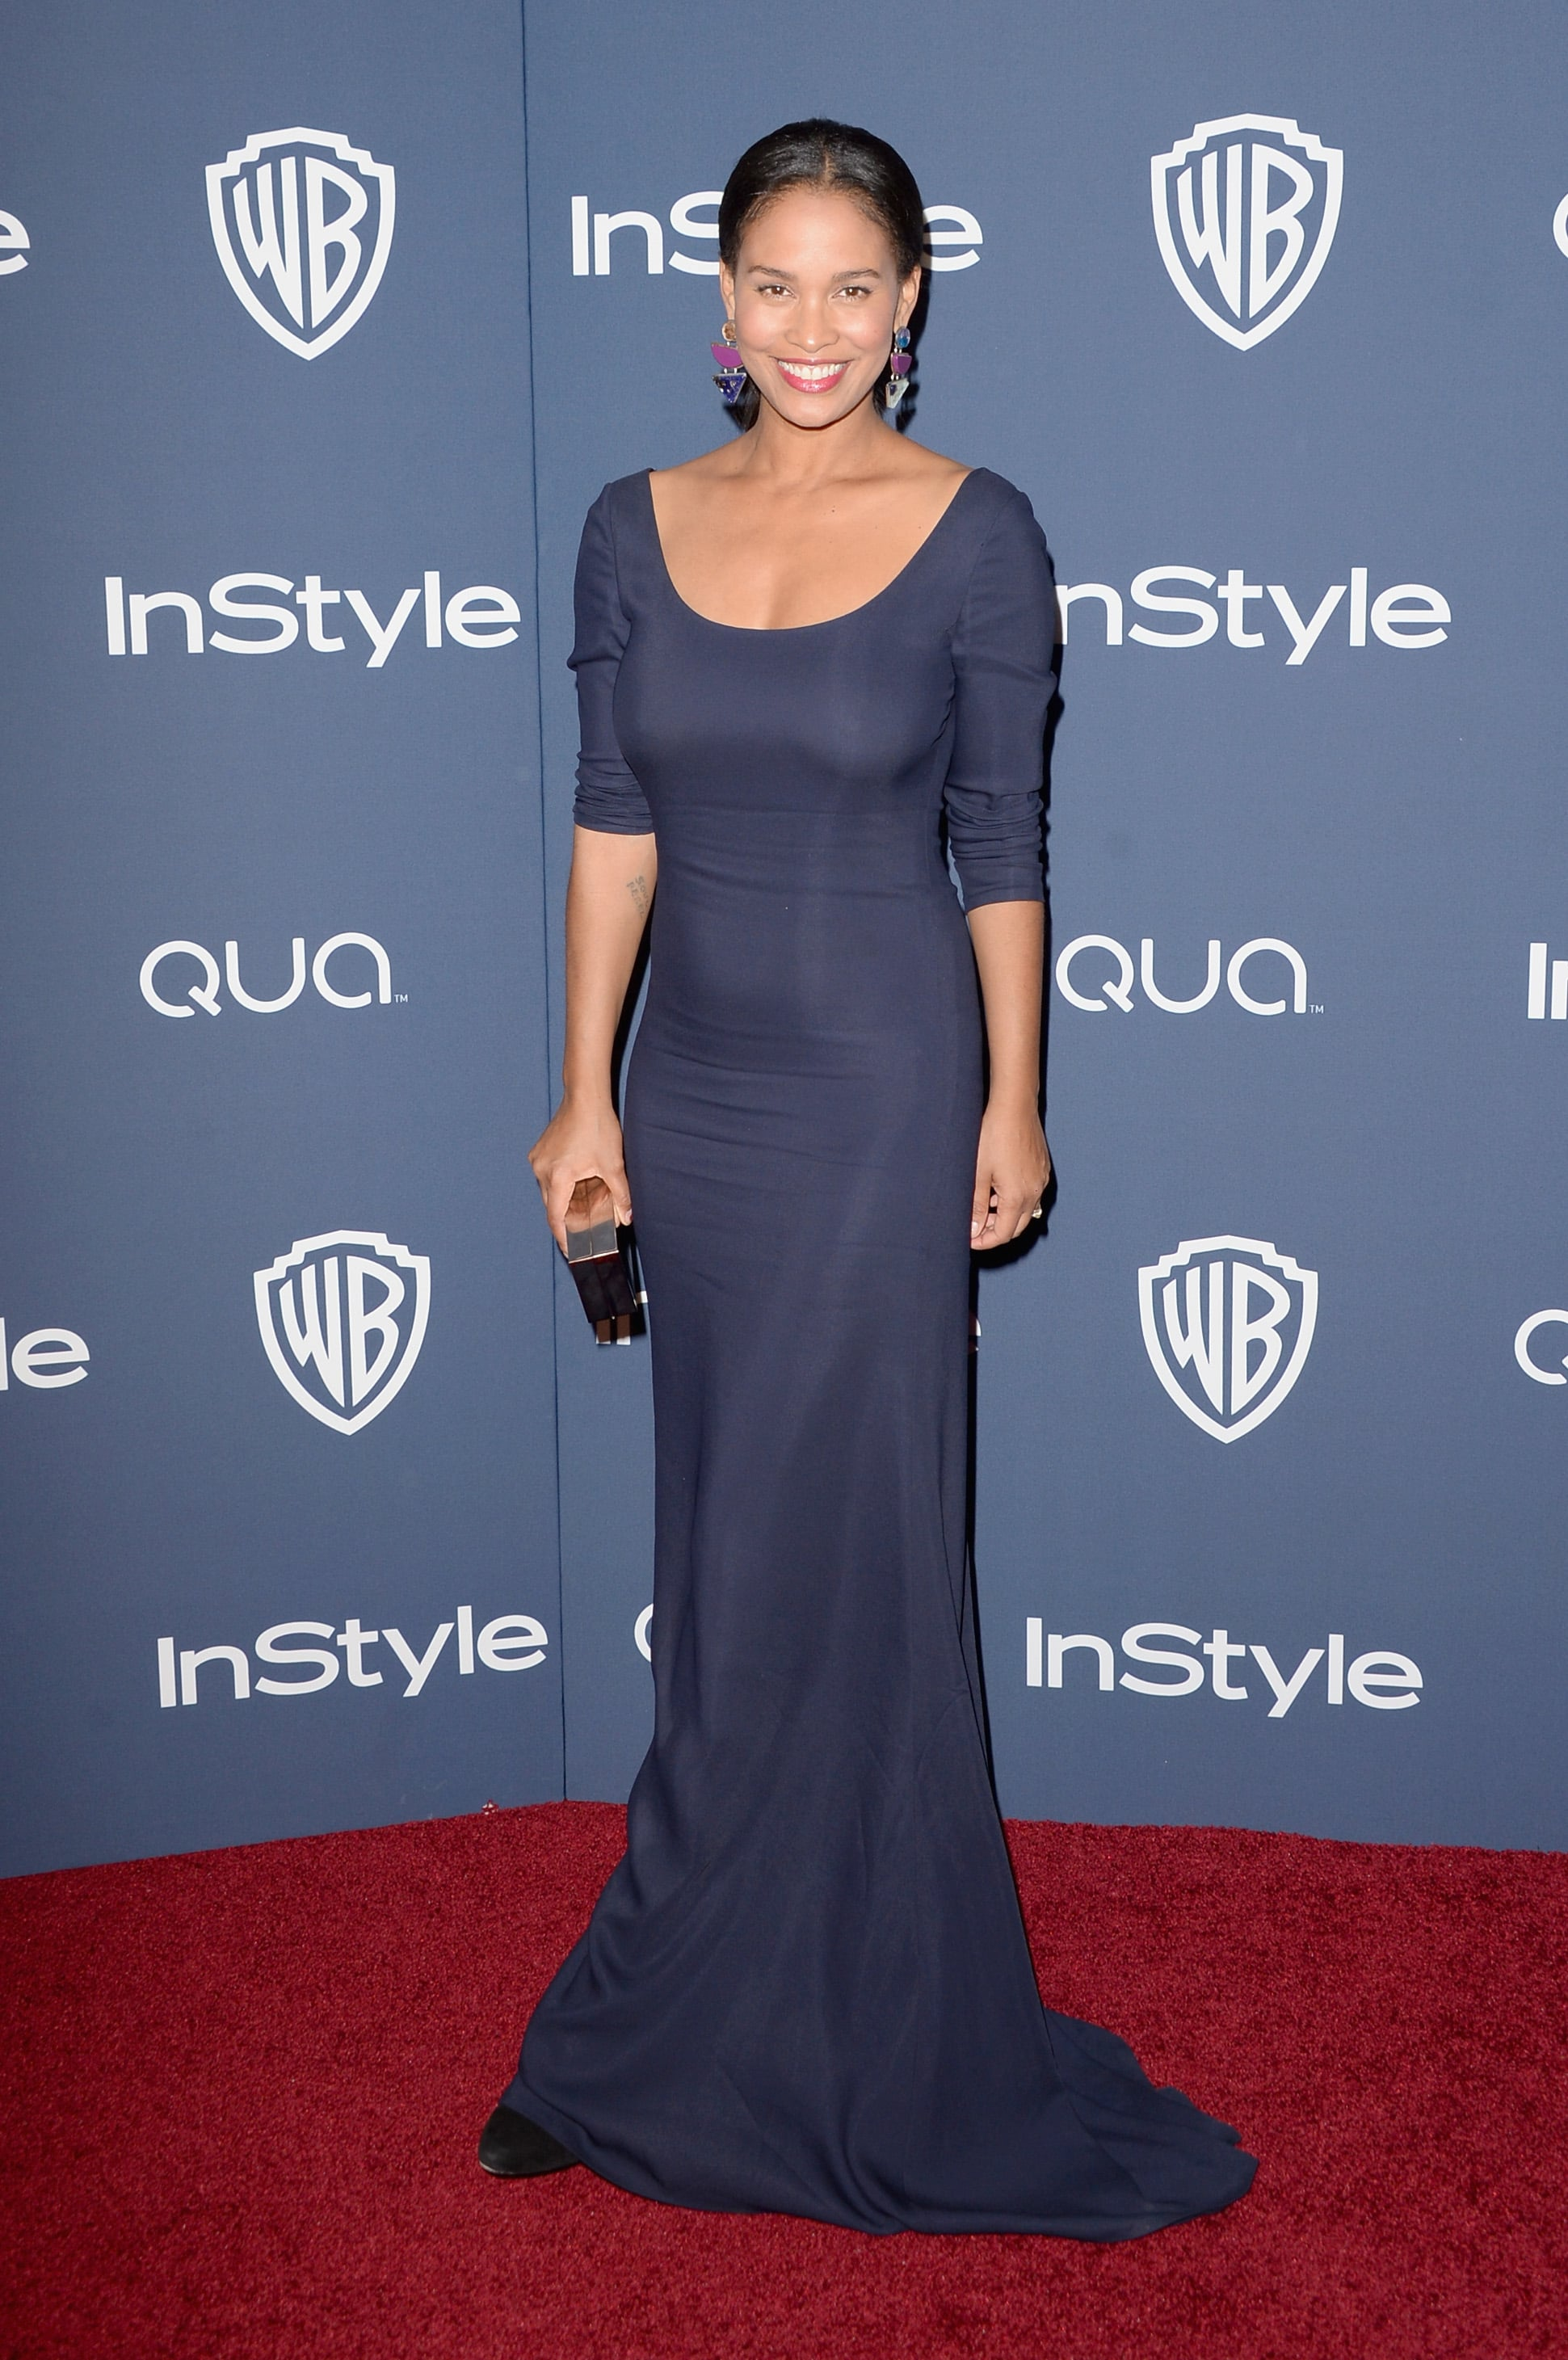 Joy Bryant at the InStyle Golden Globes party.